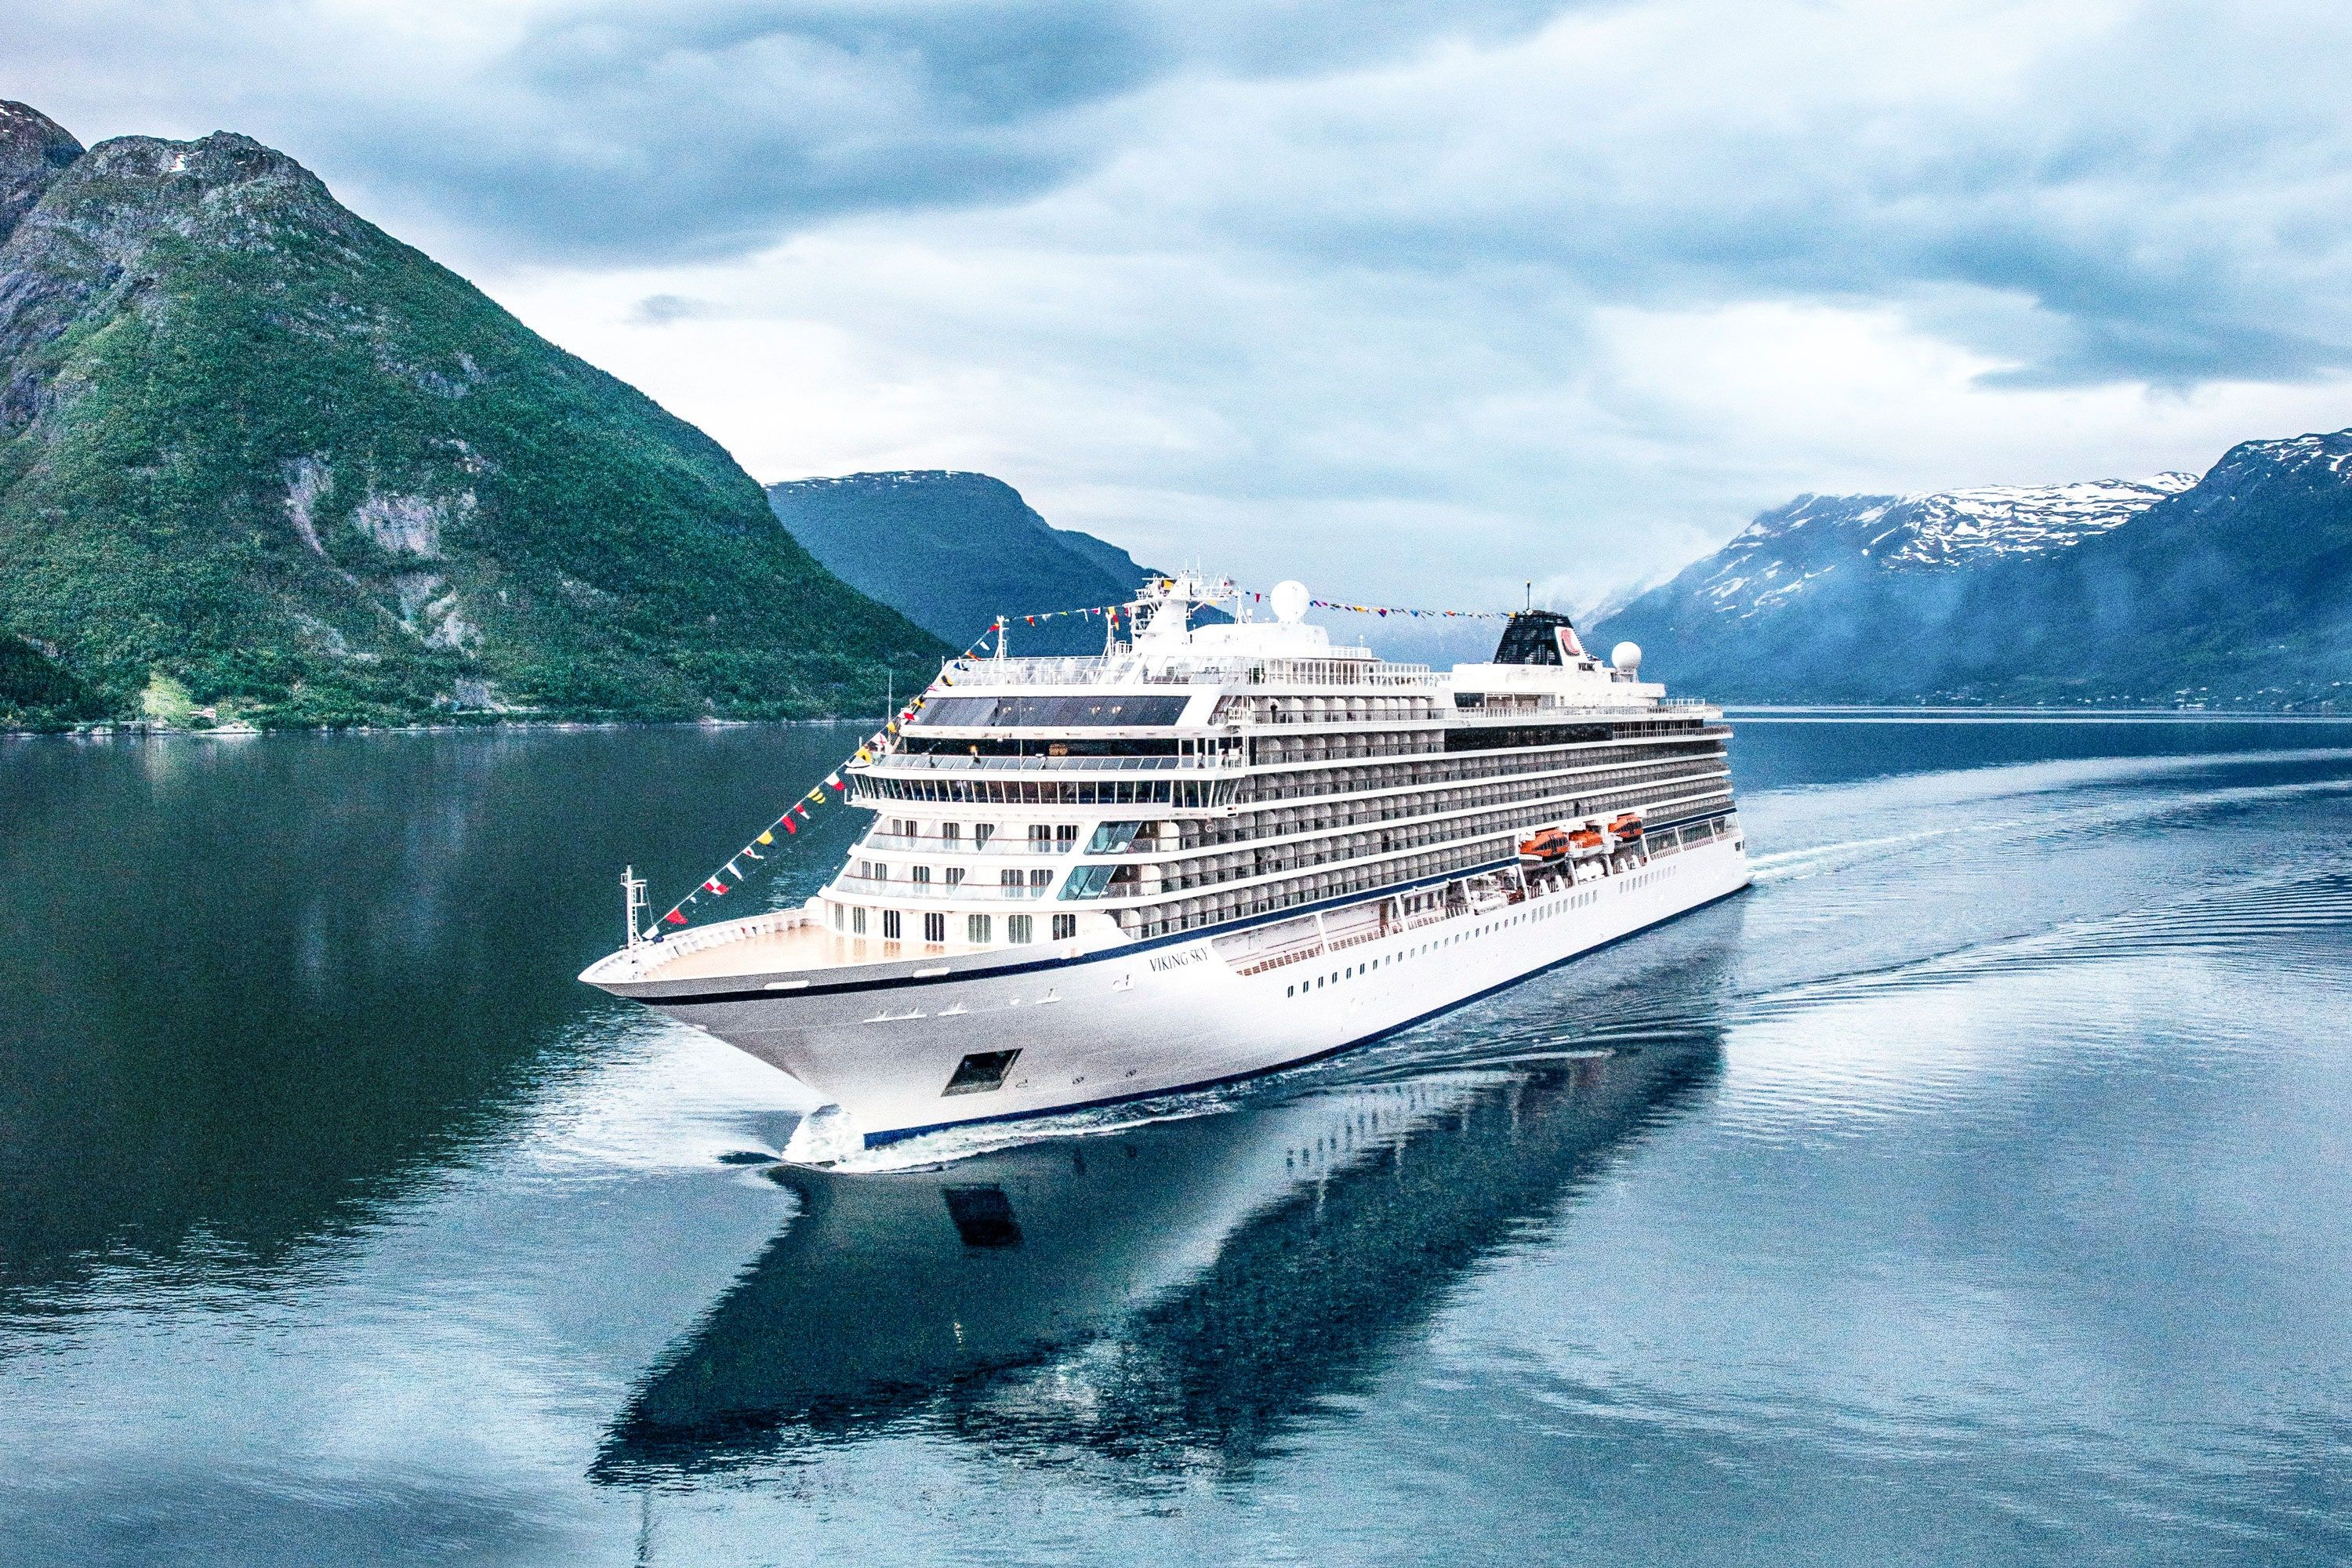 Global Cruise Travel Market Status and Outlook (2015-2025) in 2020 | Cruise  travel, Cruise, Travel marketing